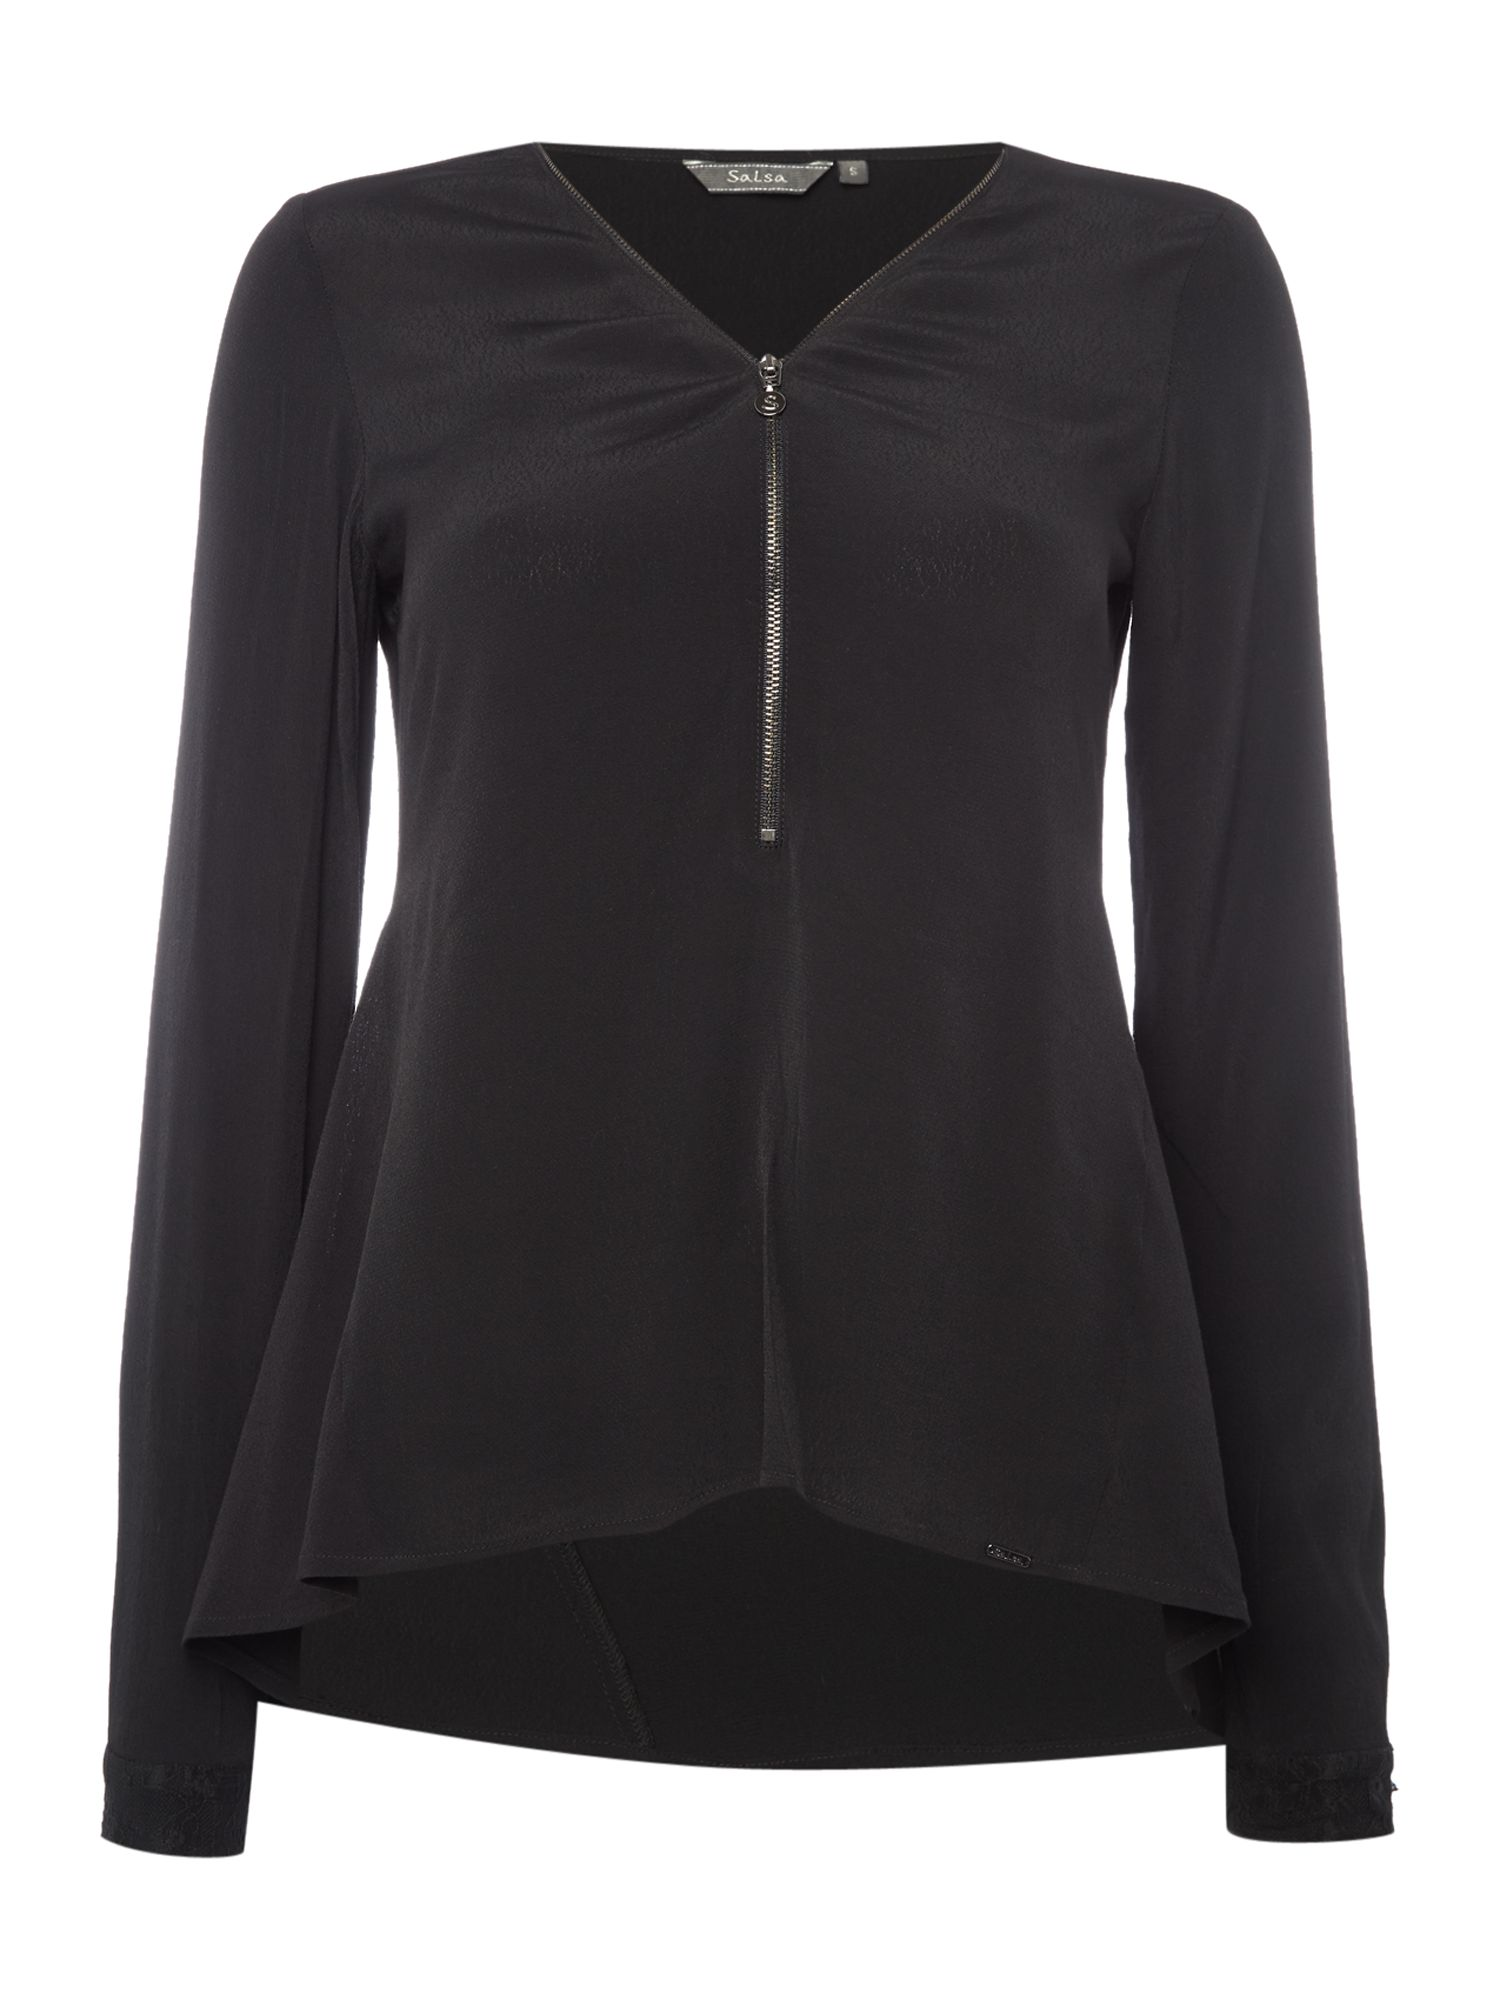 Salsa Greece Zip Up Shirt, Black